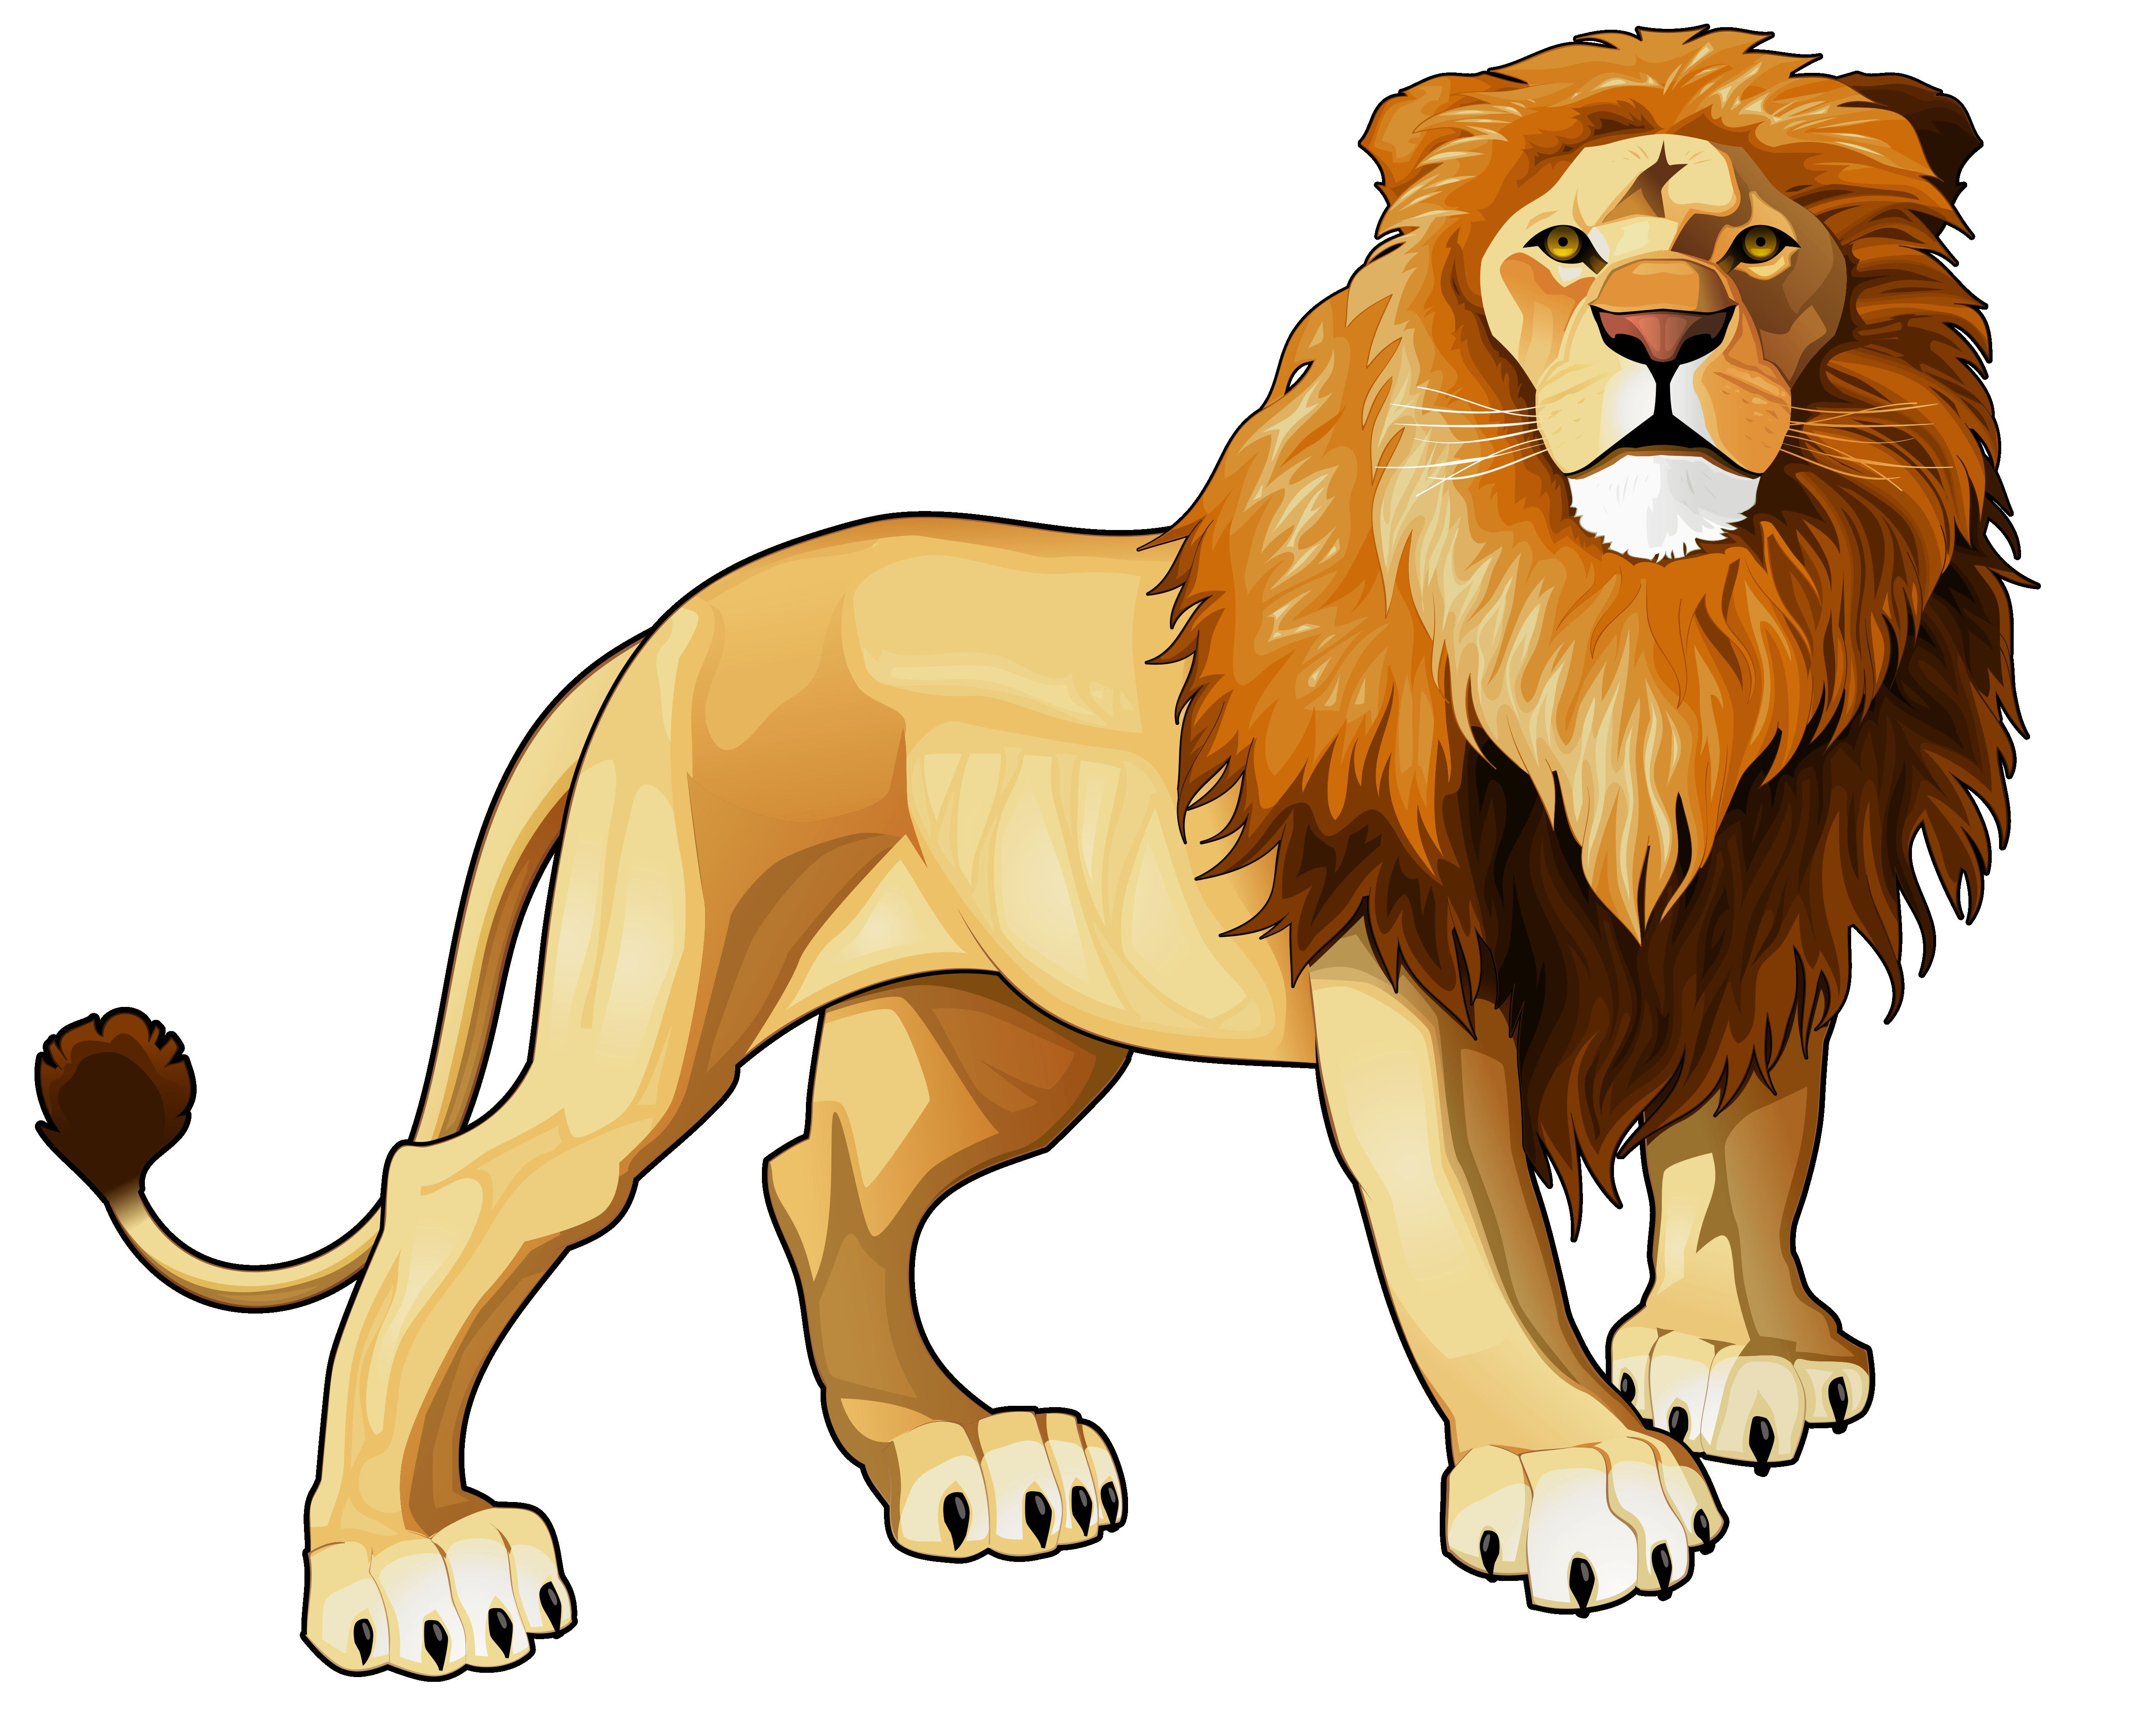 Free Lion Cliparts Download Clip Art On Clipart Inside.